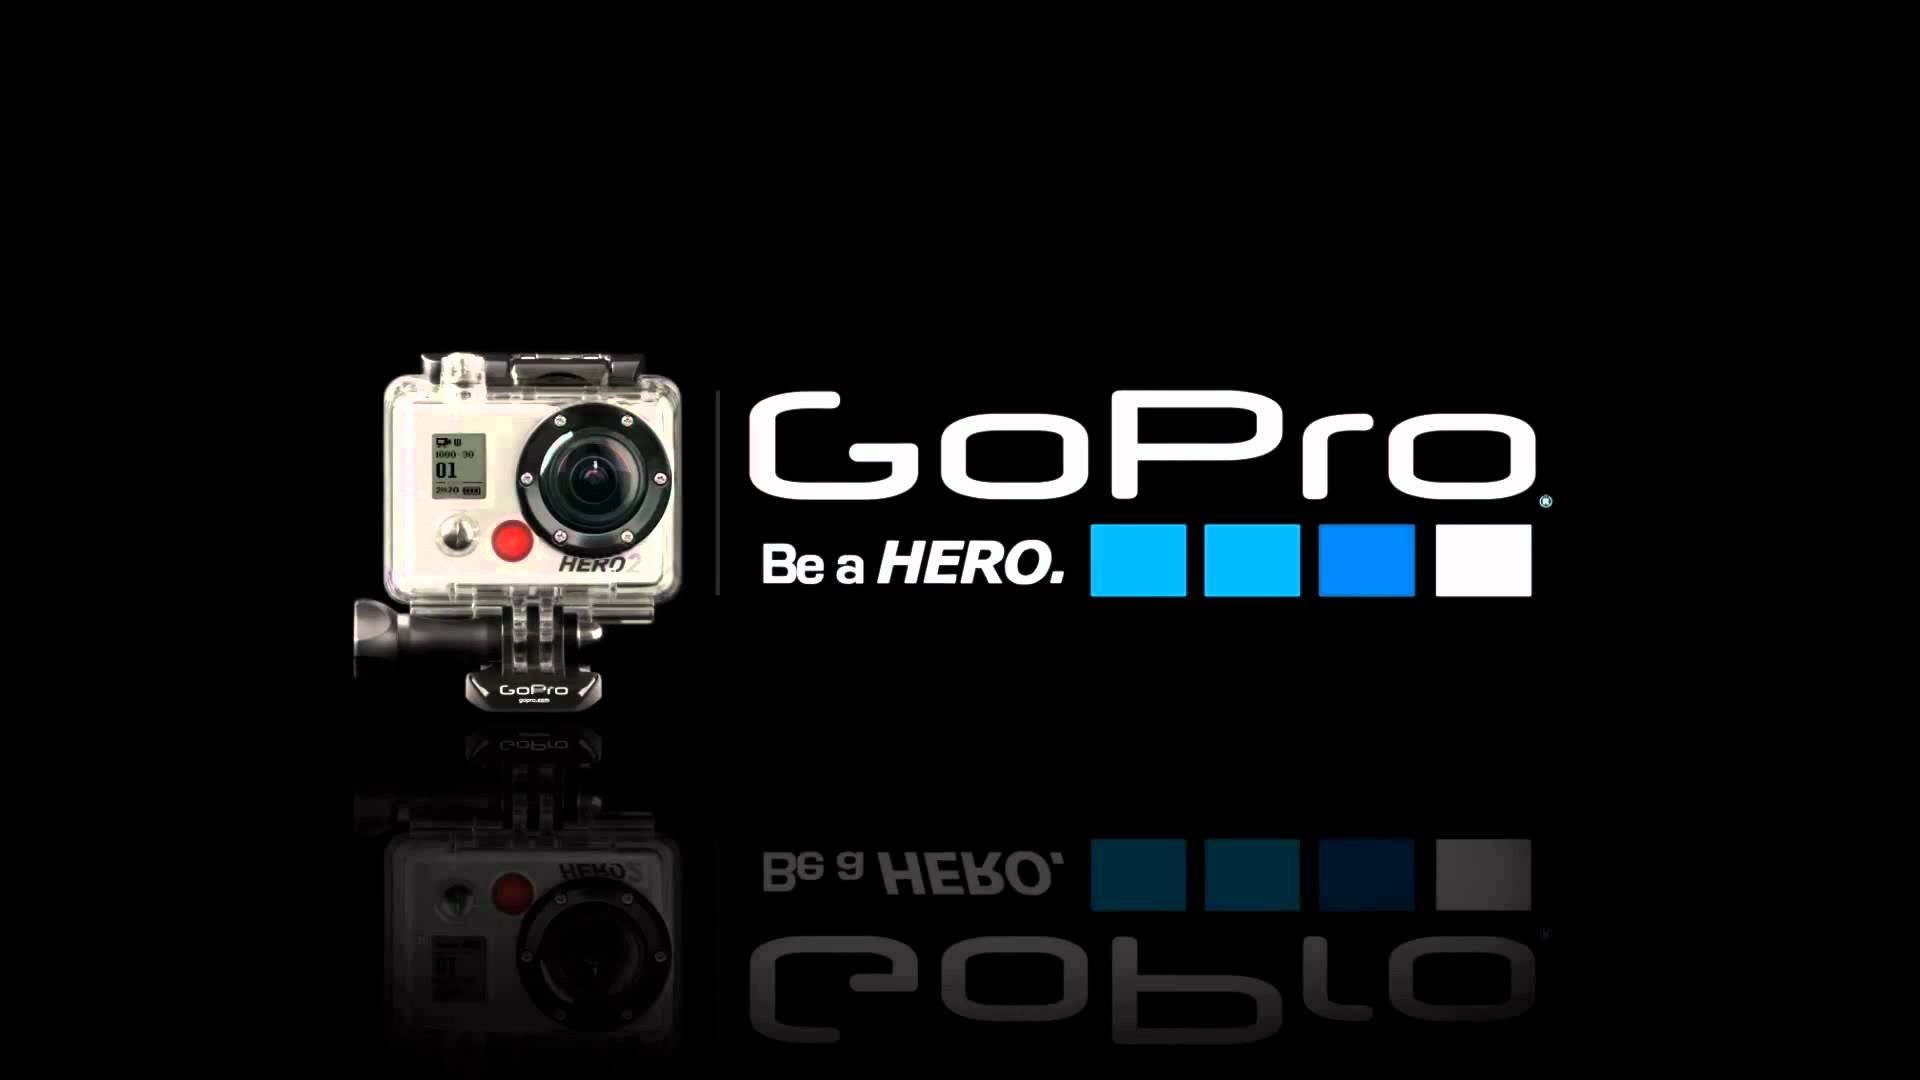 GoPro's (GPRO) Neutral Rating Reiterate at Dougherty & Co